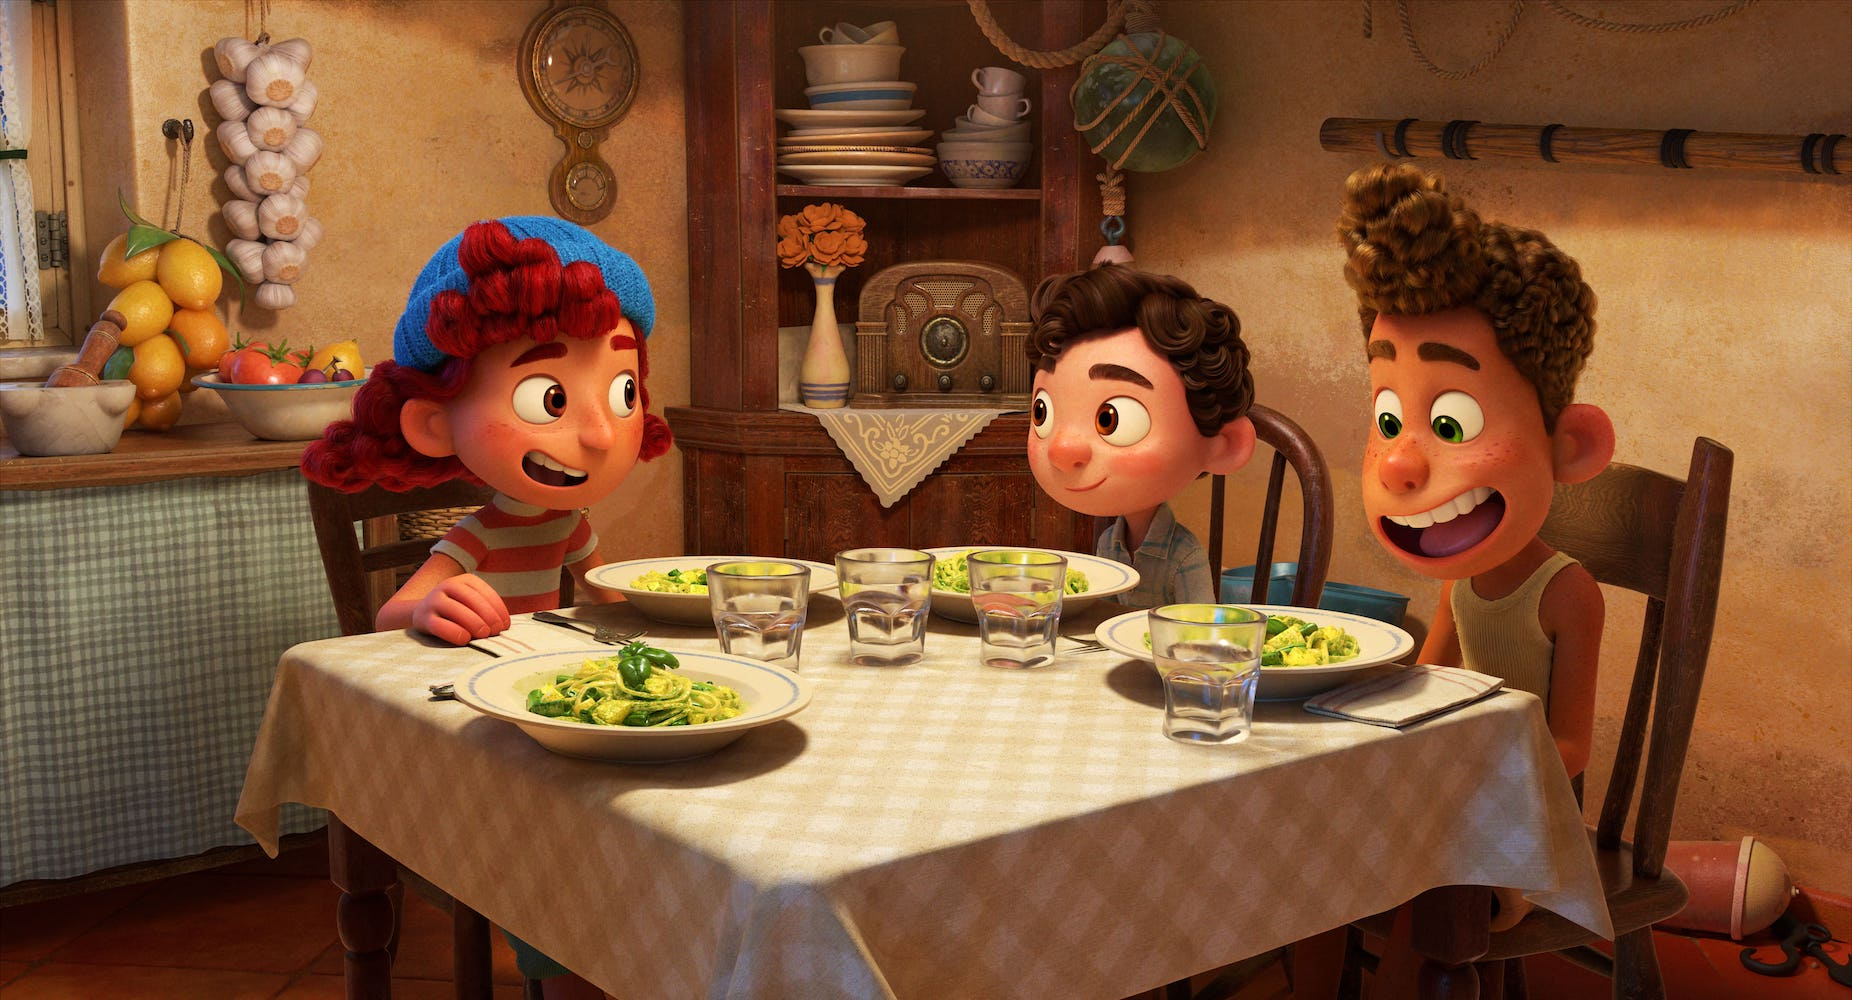 """TRENETTE AL PESTO! -- Emma Berman, Jacob Tremblay and Jack Dylan Grazer provide the voices of a trio of new friends in Disney and Pixar's """"Luca."""" Outgoing and charming, Giulia invites Luca and Alberto to her house where they have pasta for the first time—it's a hit. What she doesn't know, however, is that her new friends are actually sea monsters who just look human when they're dry. Directed by Academy Award® nominee Enrico Casarosa (""""La Luna"""") and produced by Andrea Warren (""""Lava,"""" """"Cars 3""""), """"Luca"""" debuts on Disney+ on June 18, 2021. © 2021 Disney/Pixar. All Rights Reserved."""